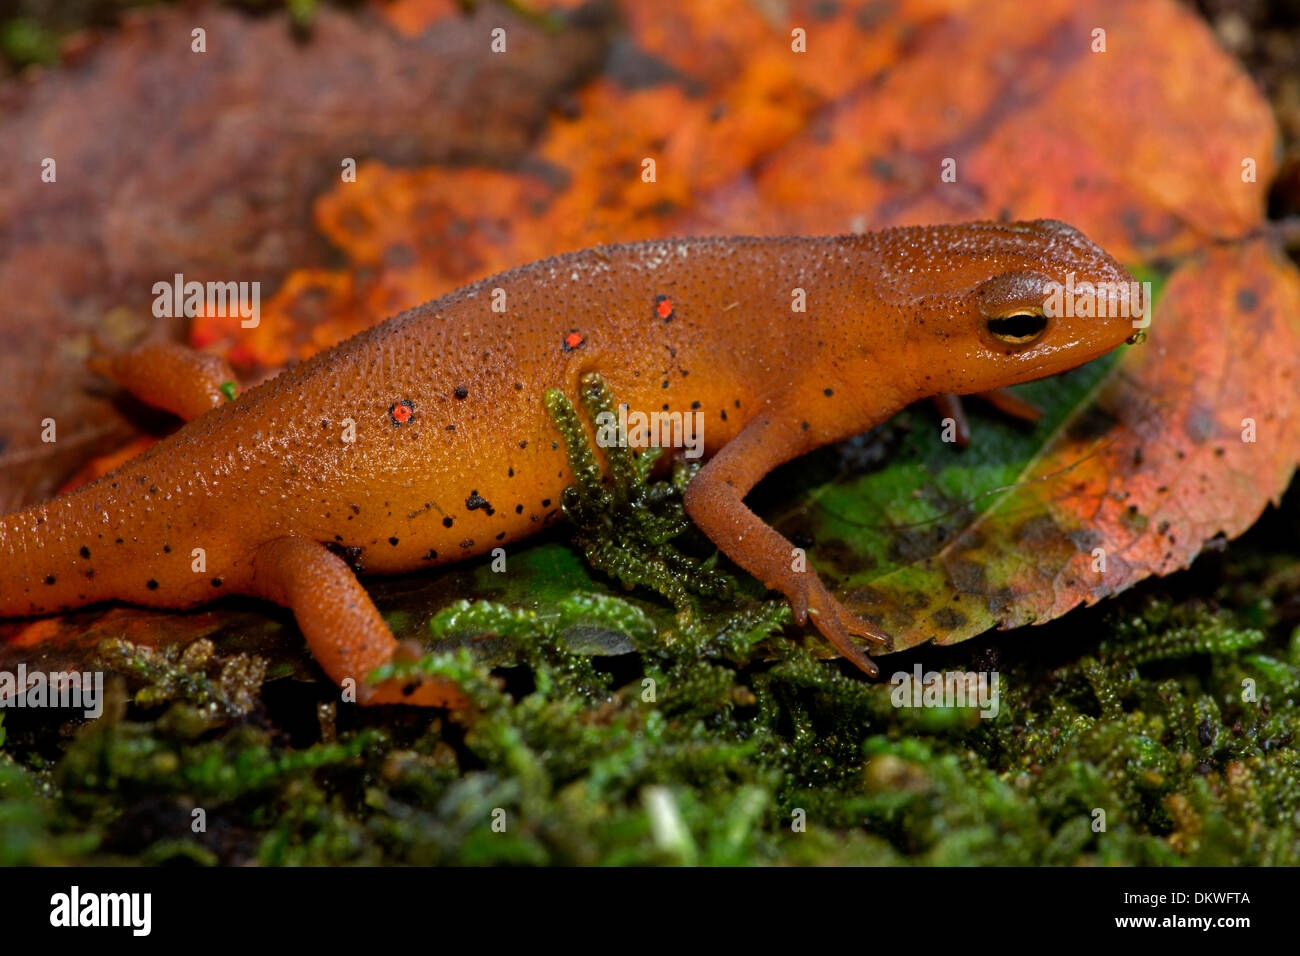 Red-spotted newt, Notophthalmus viridescens, Red eft (terrestrial phase), New York Stock Photo